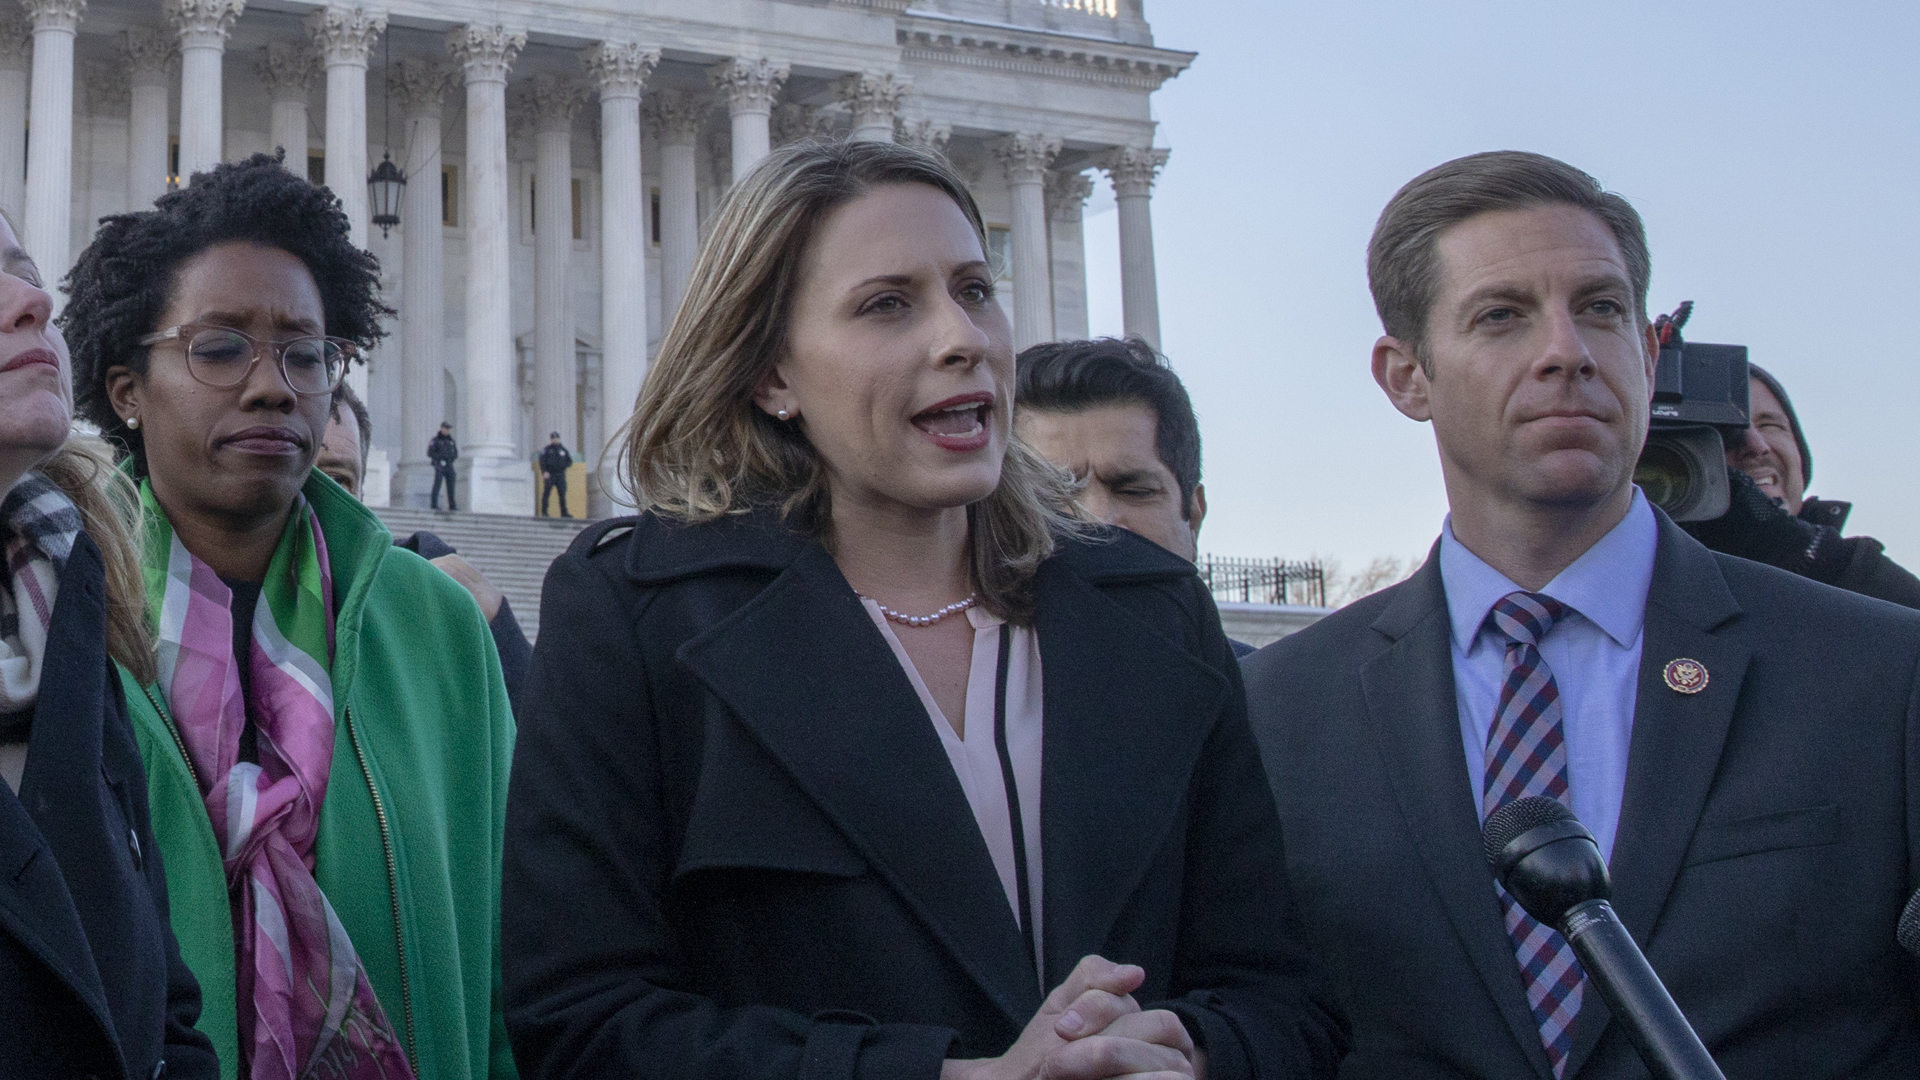 U.S. Rep Katie Hill (D-CA) speaks to media outside the U.S. Capitol on Jan. 15, 2019, in Washington, D.C. (Credit: Tasos Katopodis/Getty Images)